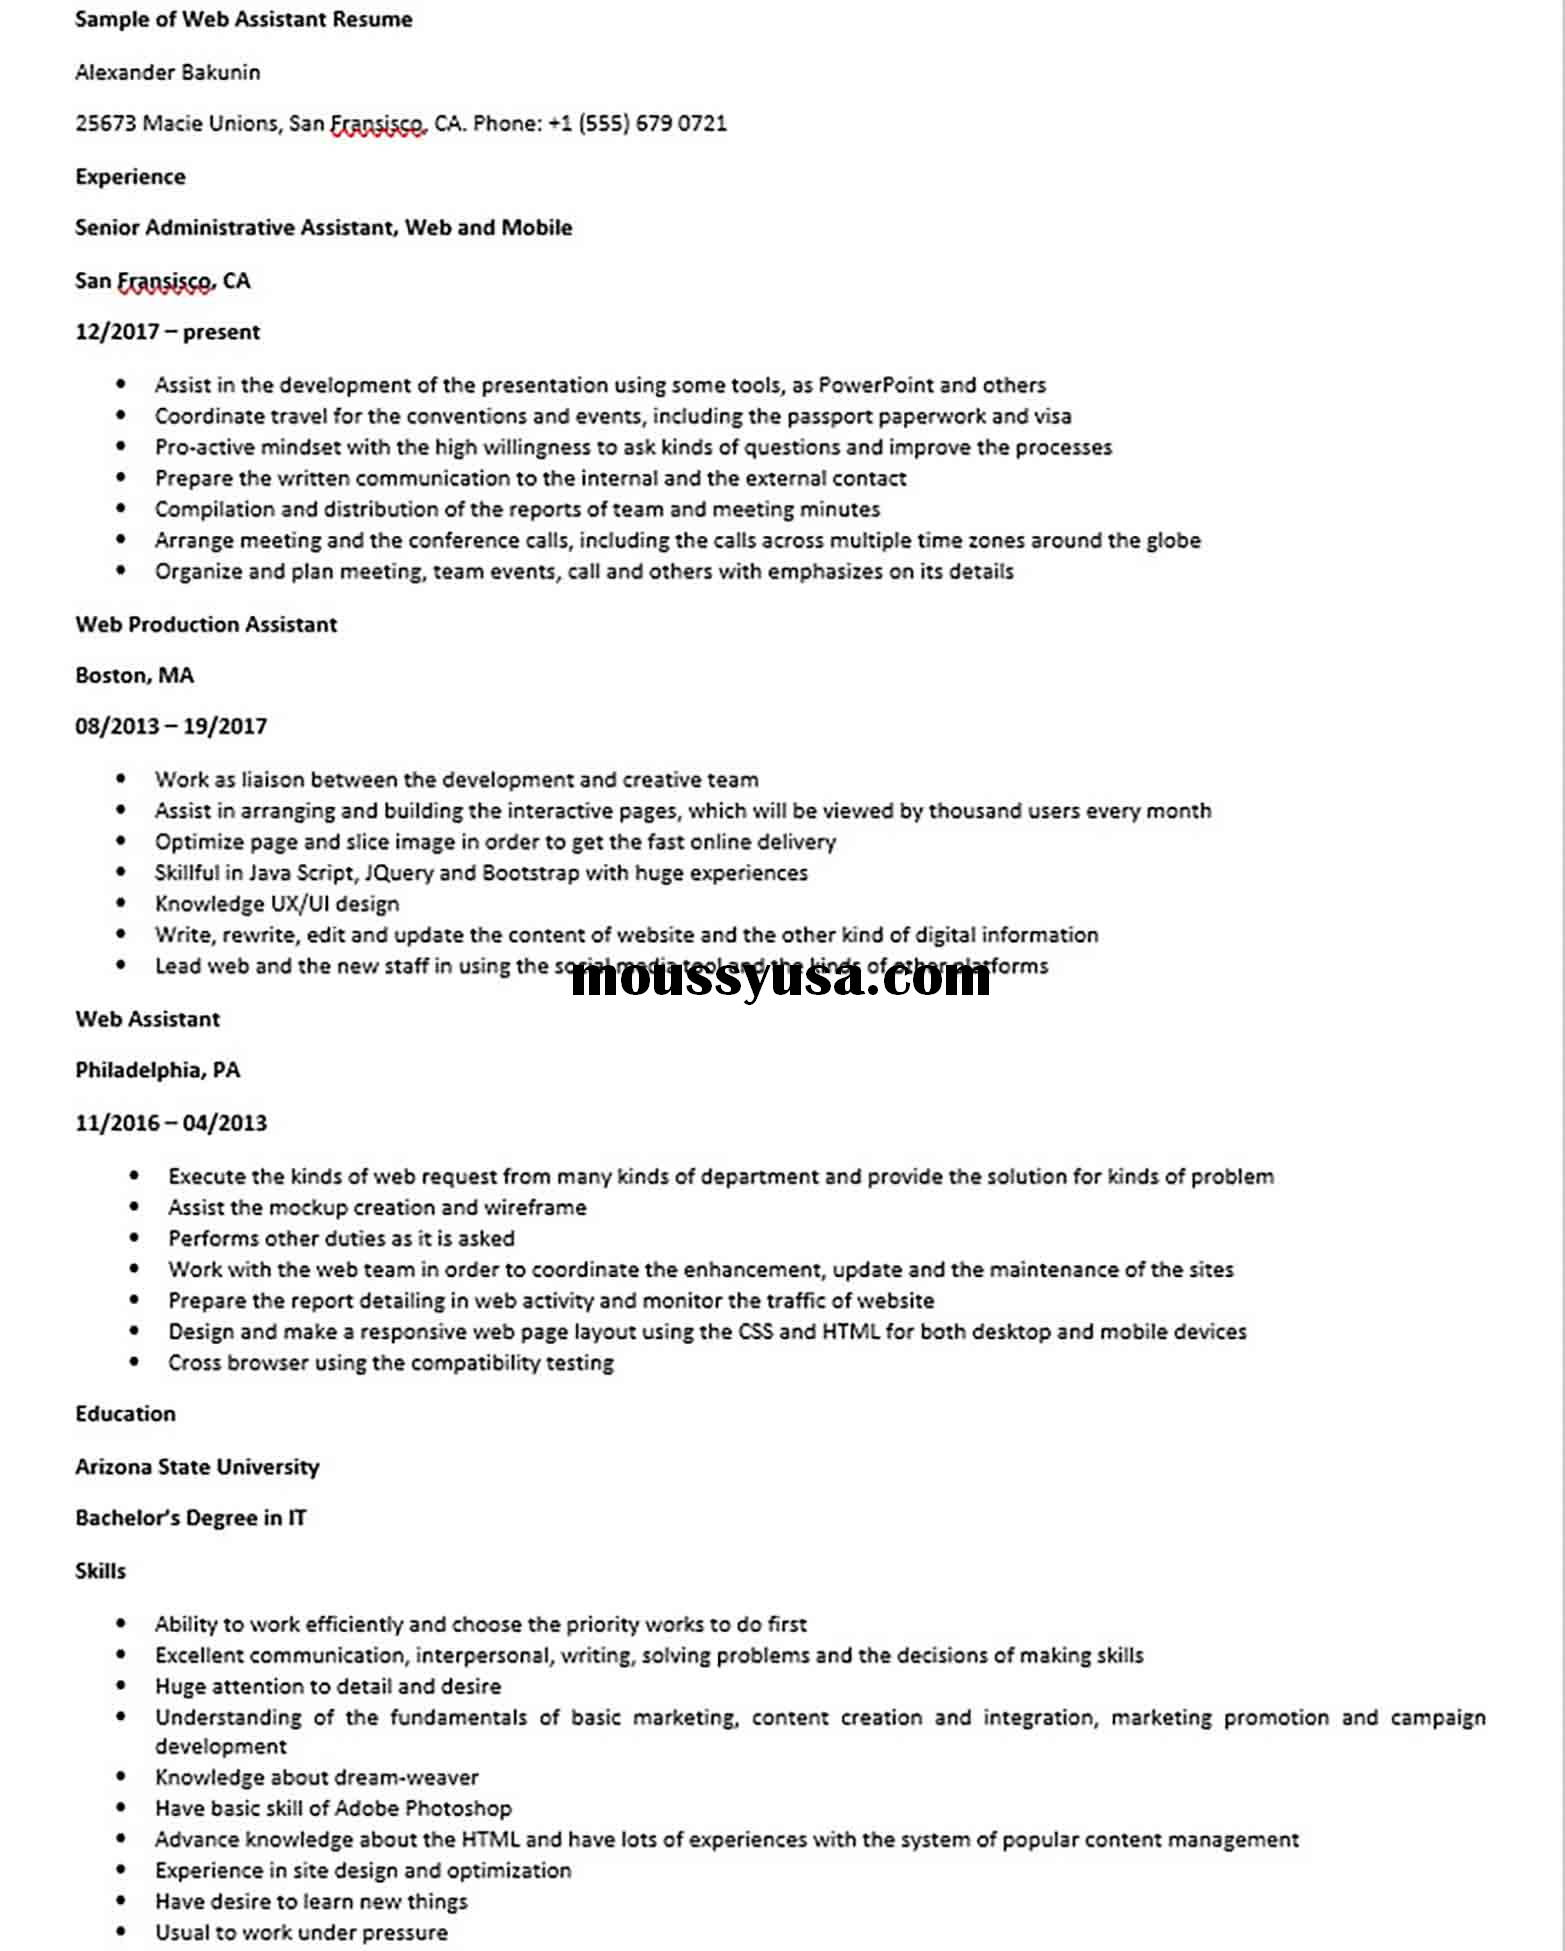 Sample of Web Assistant Resume